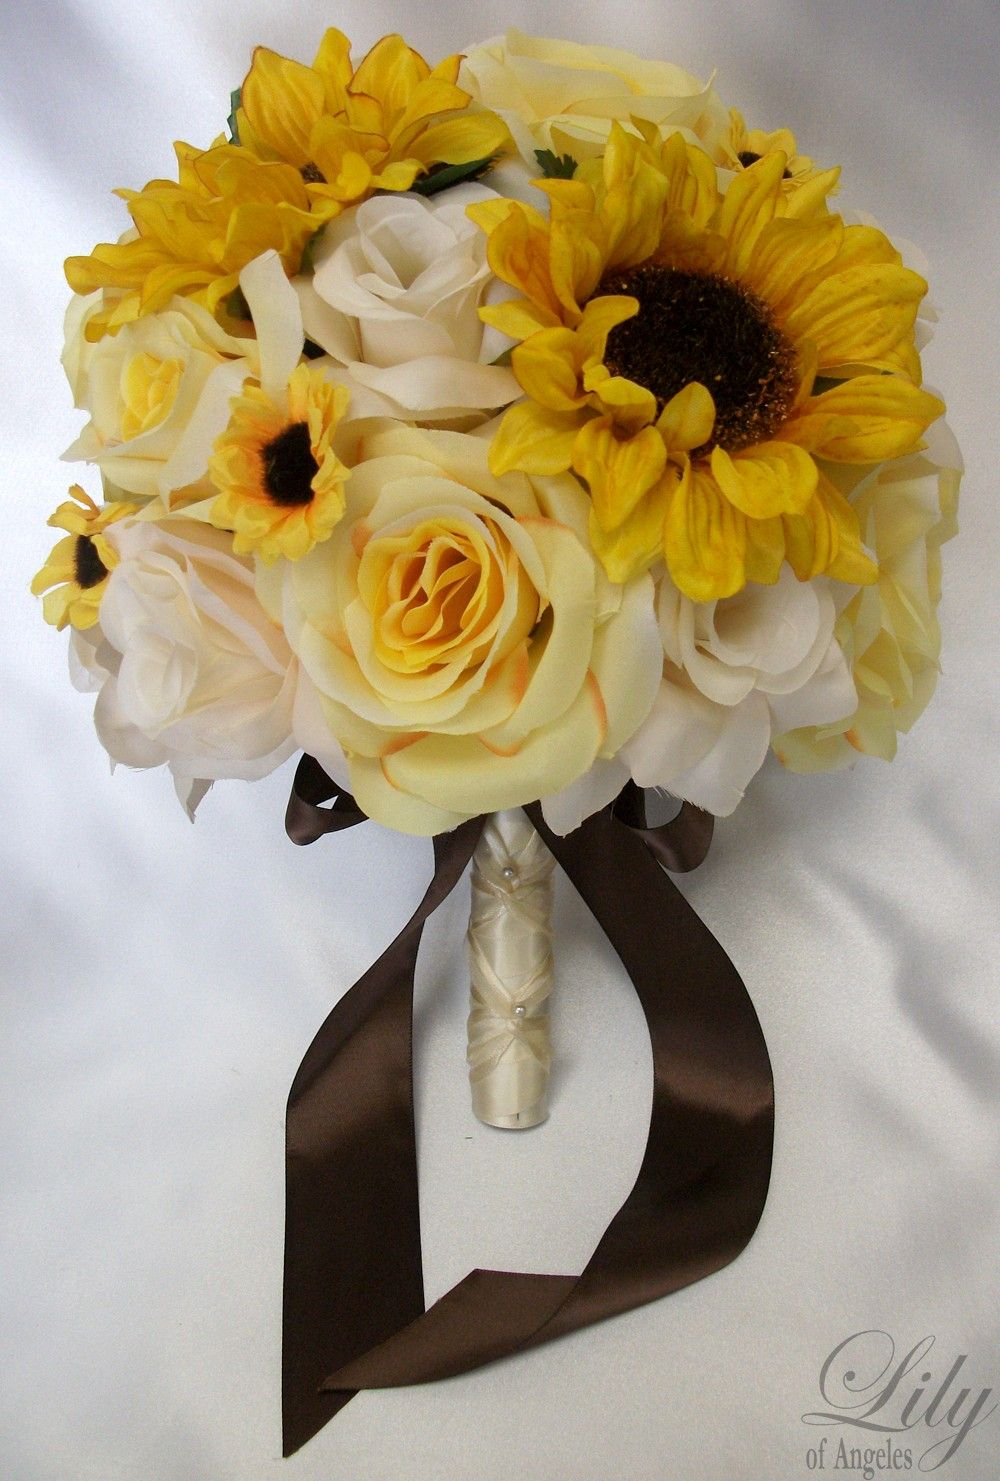 17 pieces package silk flower wedding decoration bridal bouquet 17 pieces package silk flower wedding decoration bridal bouquet sunflower yellow ivory lily of angeles izmirmasajfo